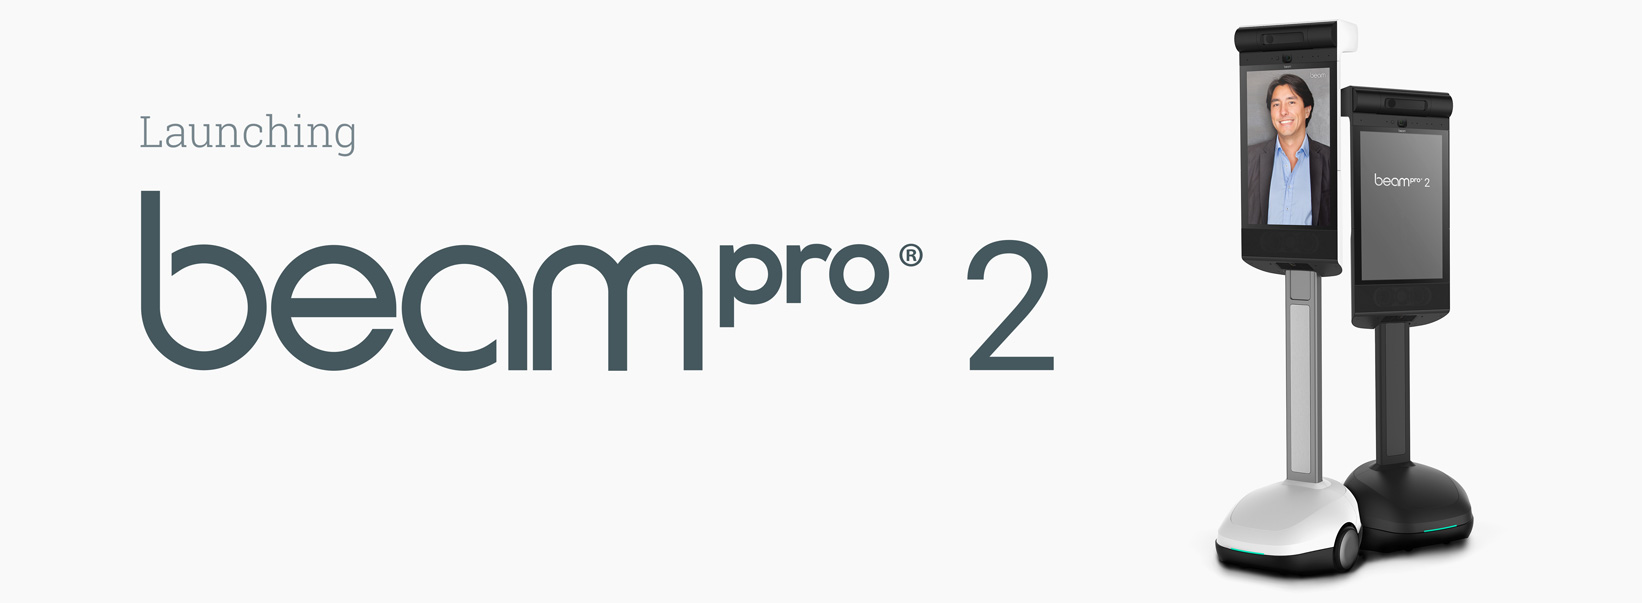 BeamPro2 CES2018 banner 3